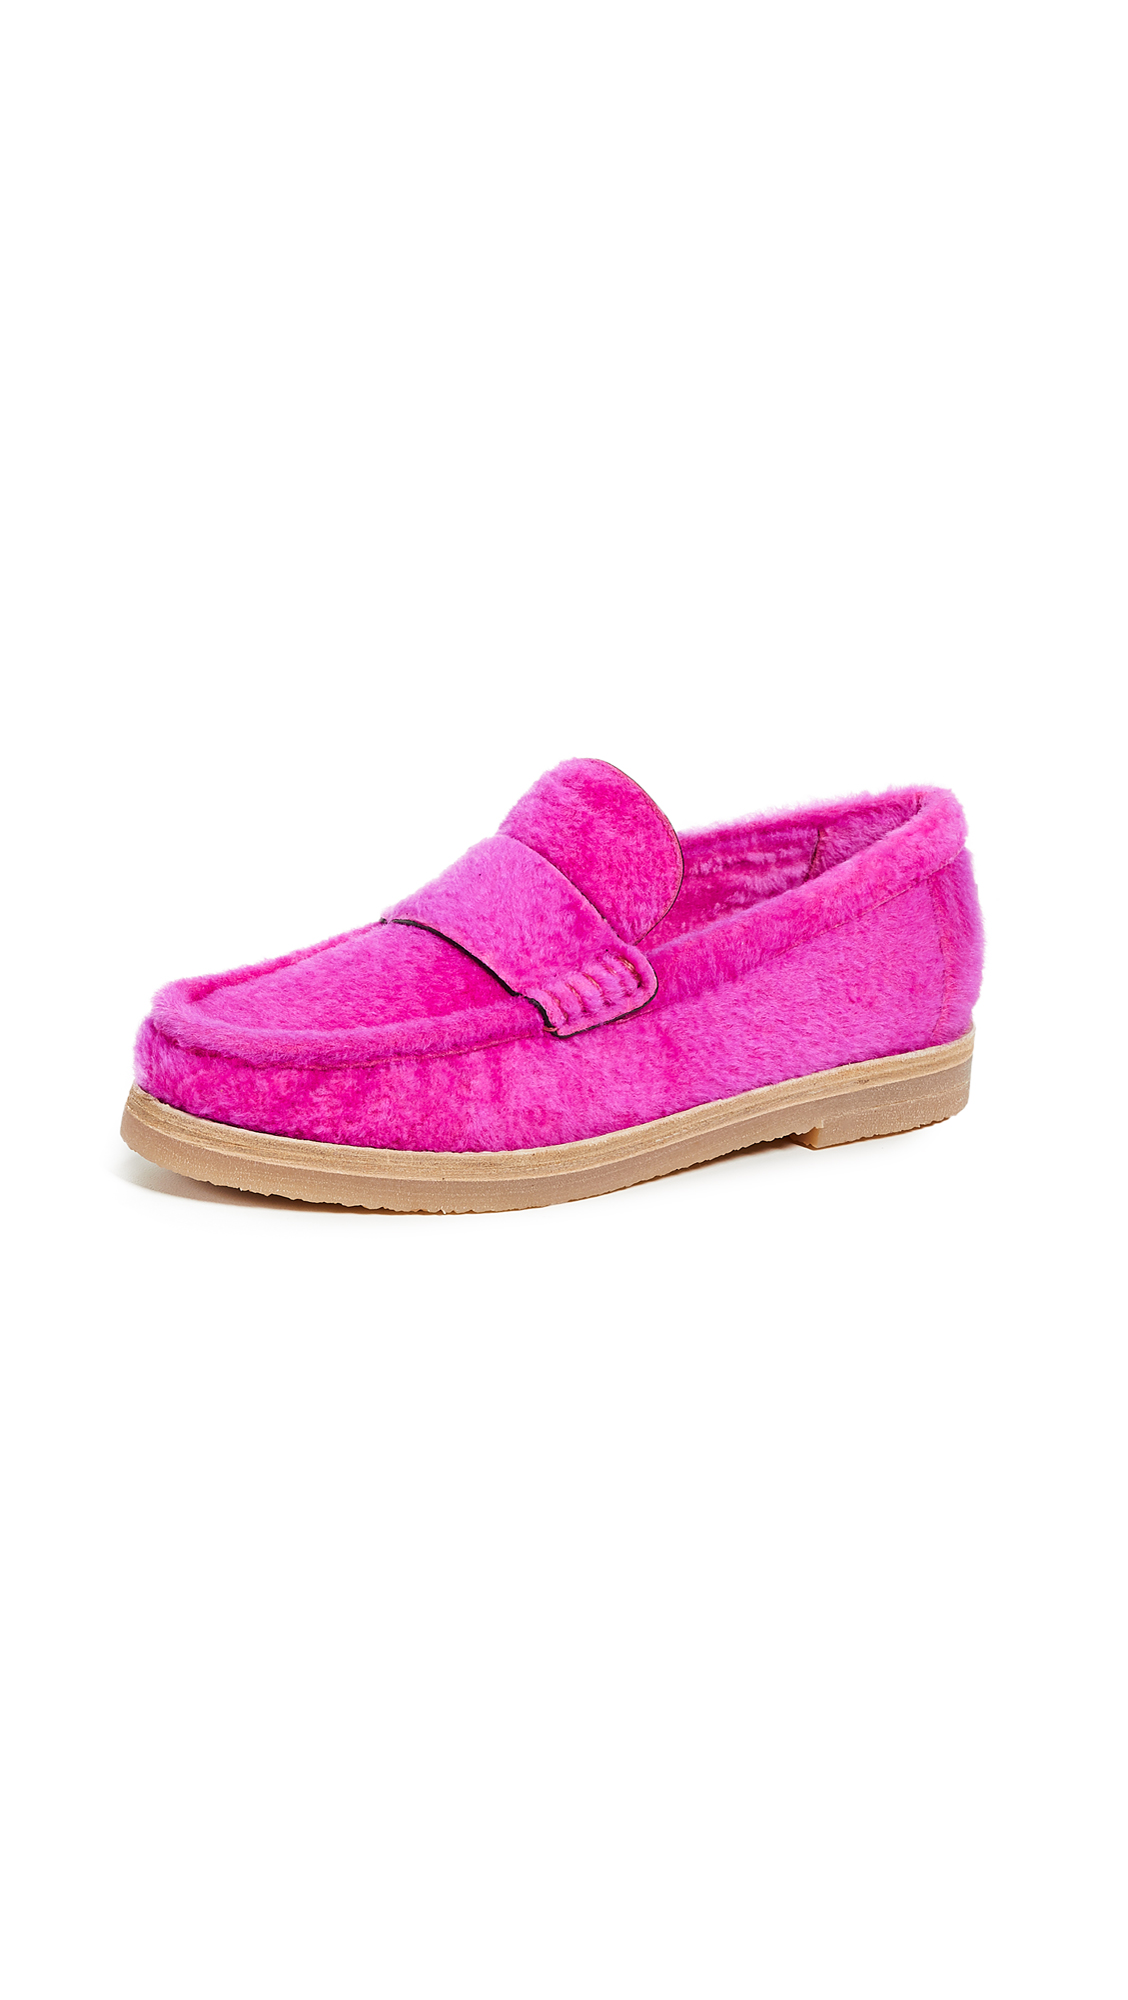 Stuart Weitzman Bromley Loafers - Flamingo